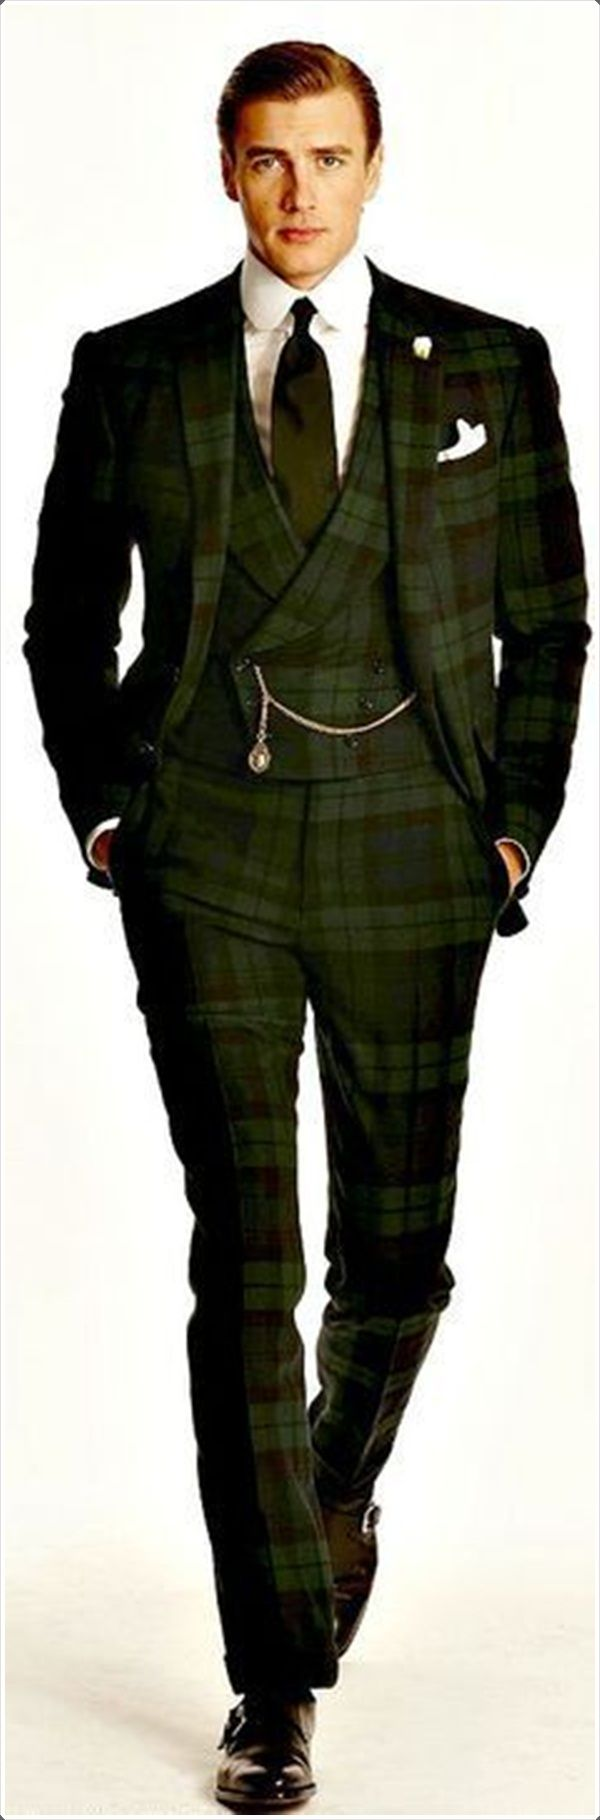 Revised Fashion of Plaid Pants for Men  40 Outfits to Check  8d4d077e5d1